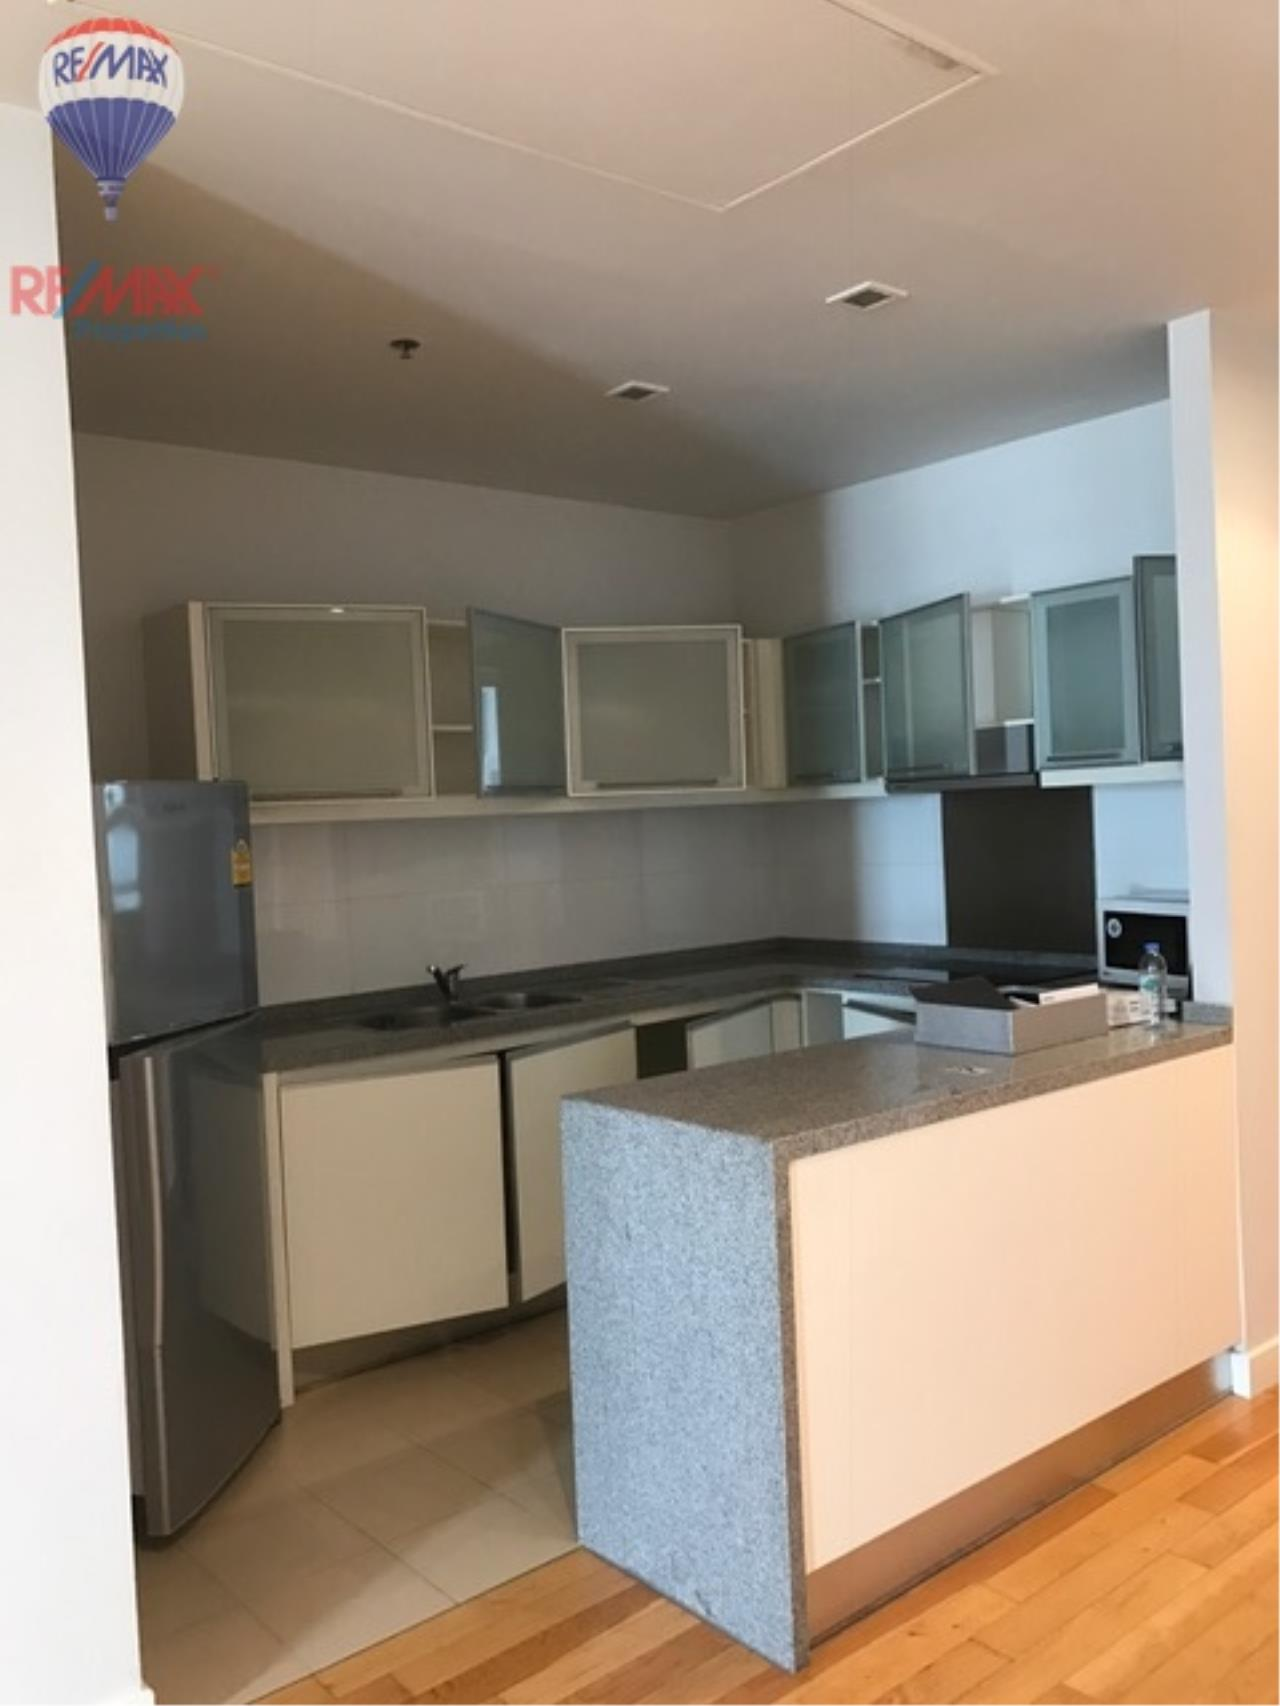 RE/MAX Properties Agency's RENT 2 Bedroom 90 Sq.m at Millennium Residence 8